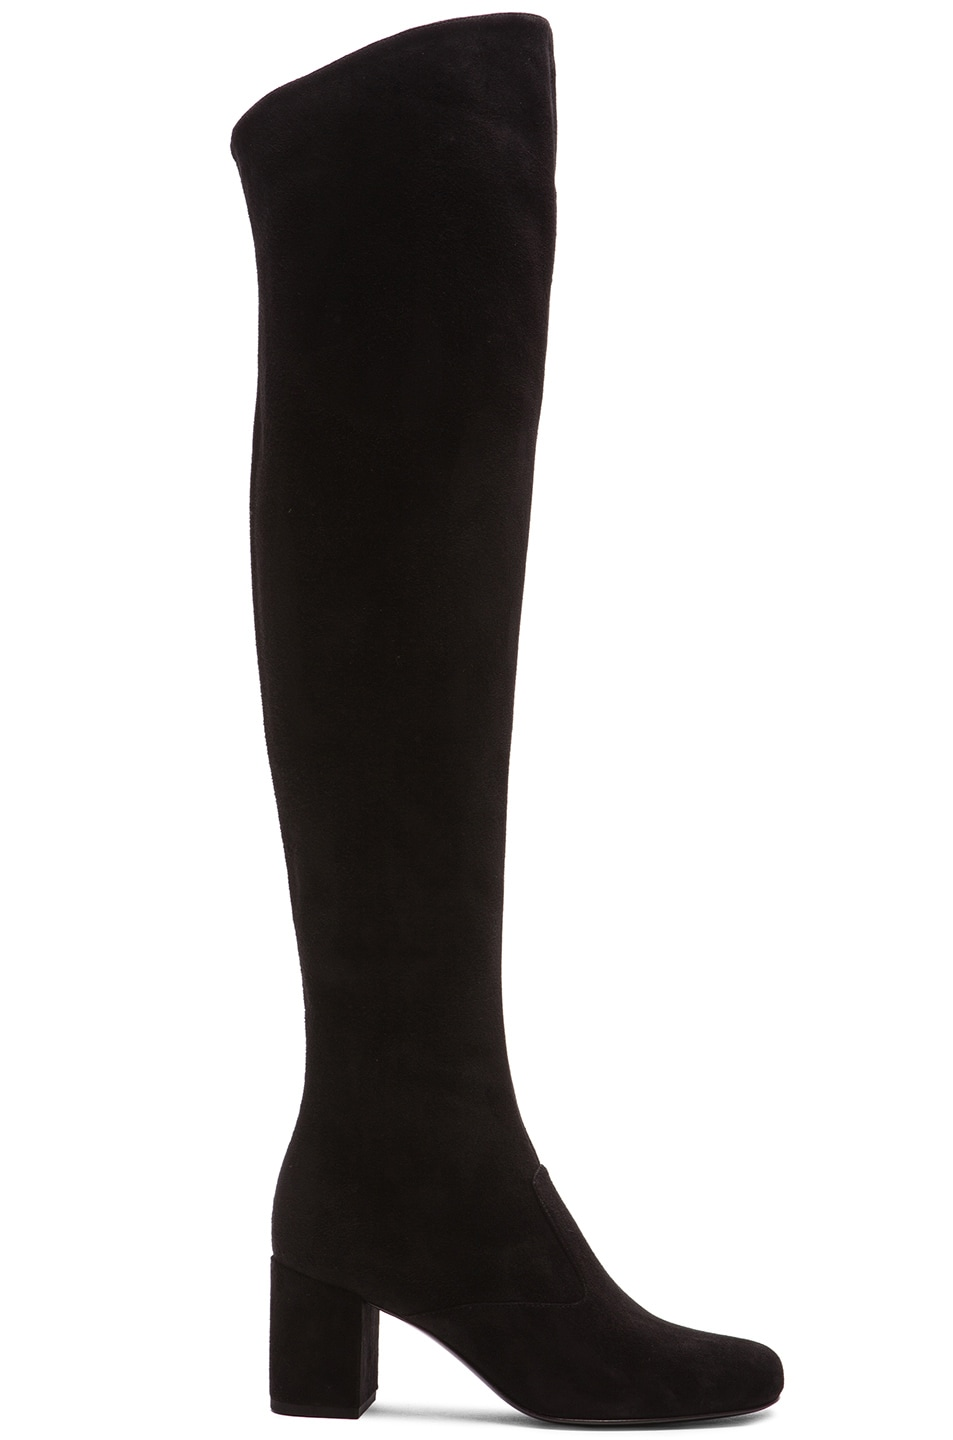 Image 1 of Saint Laurent Suede BB Thigh High Boots in Black